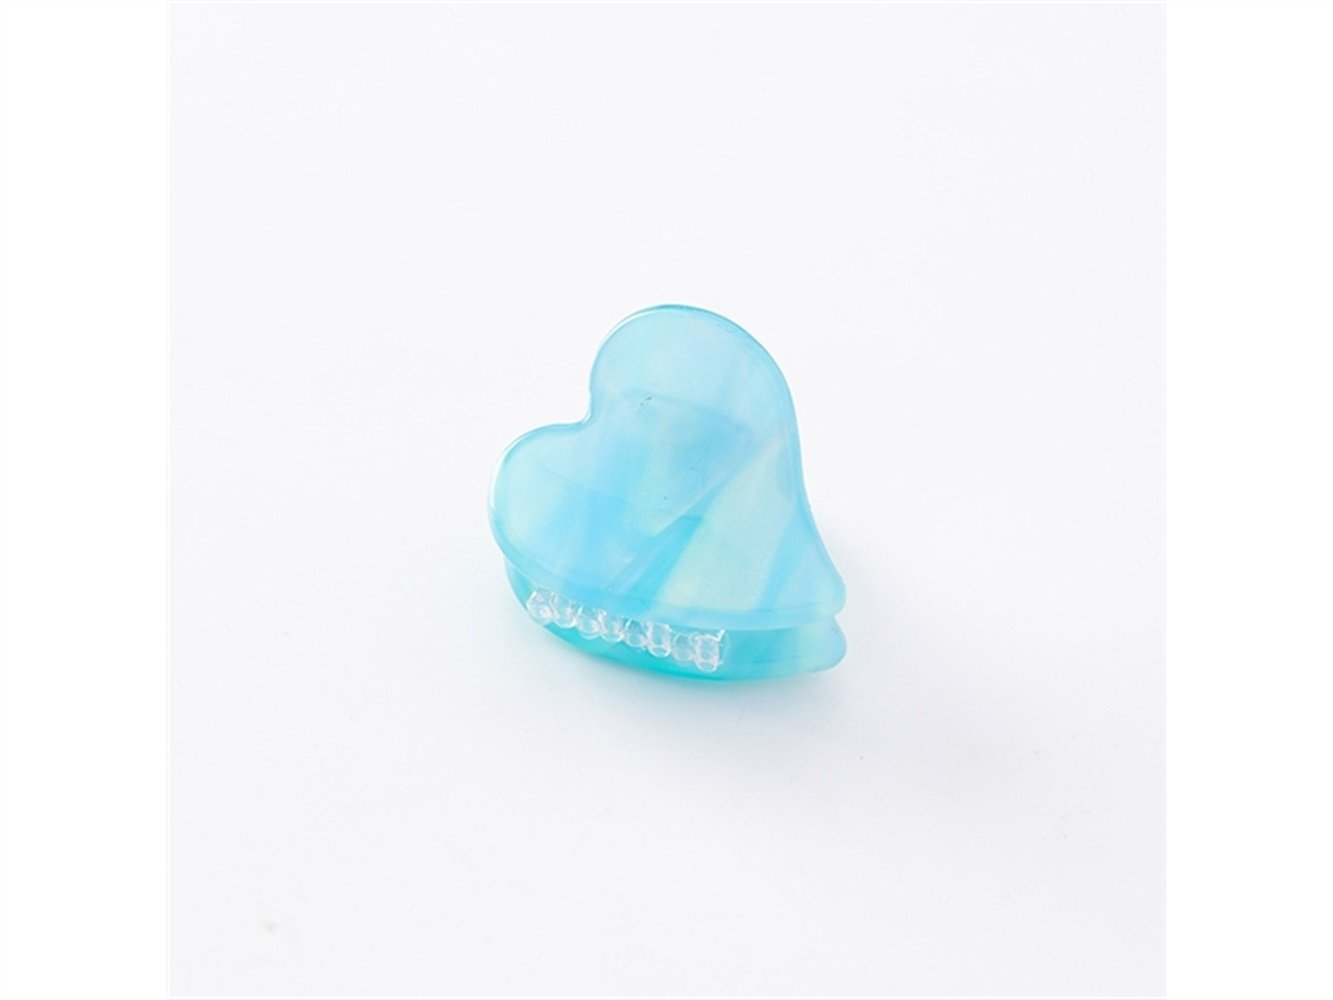 Gelaiken Love Heart-shaped Marbled Printing Mini Claw Clips Mini Jaw Clips(Light Blue) for Different Hair Style